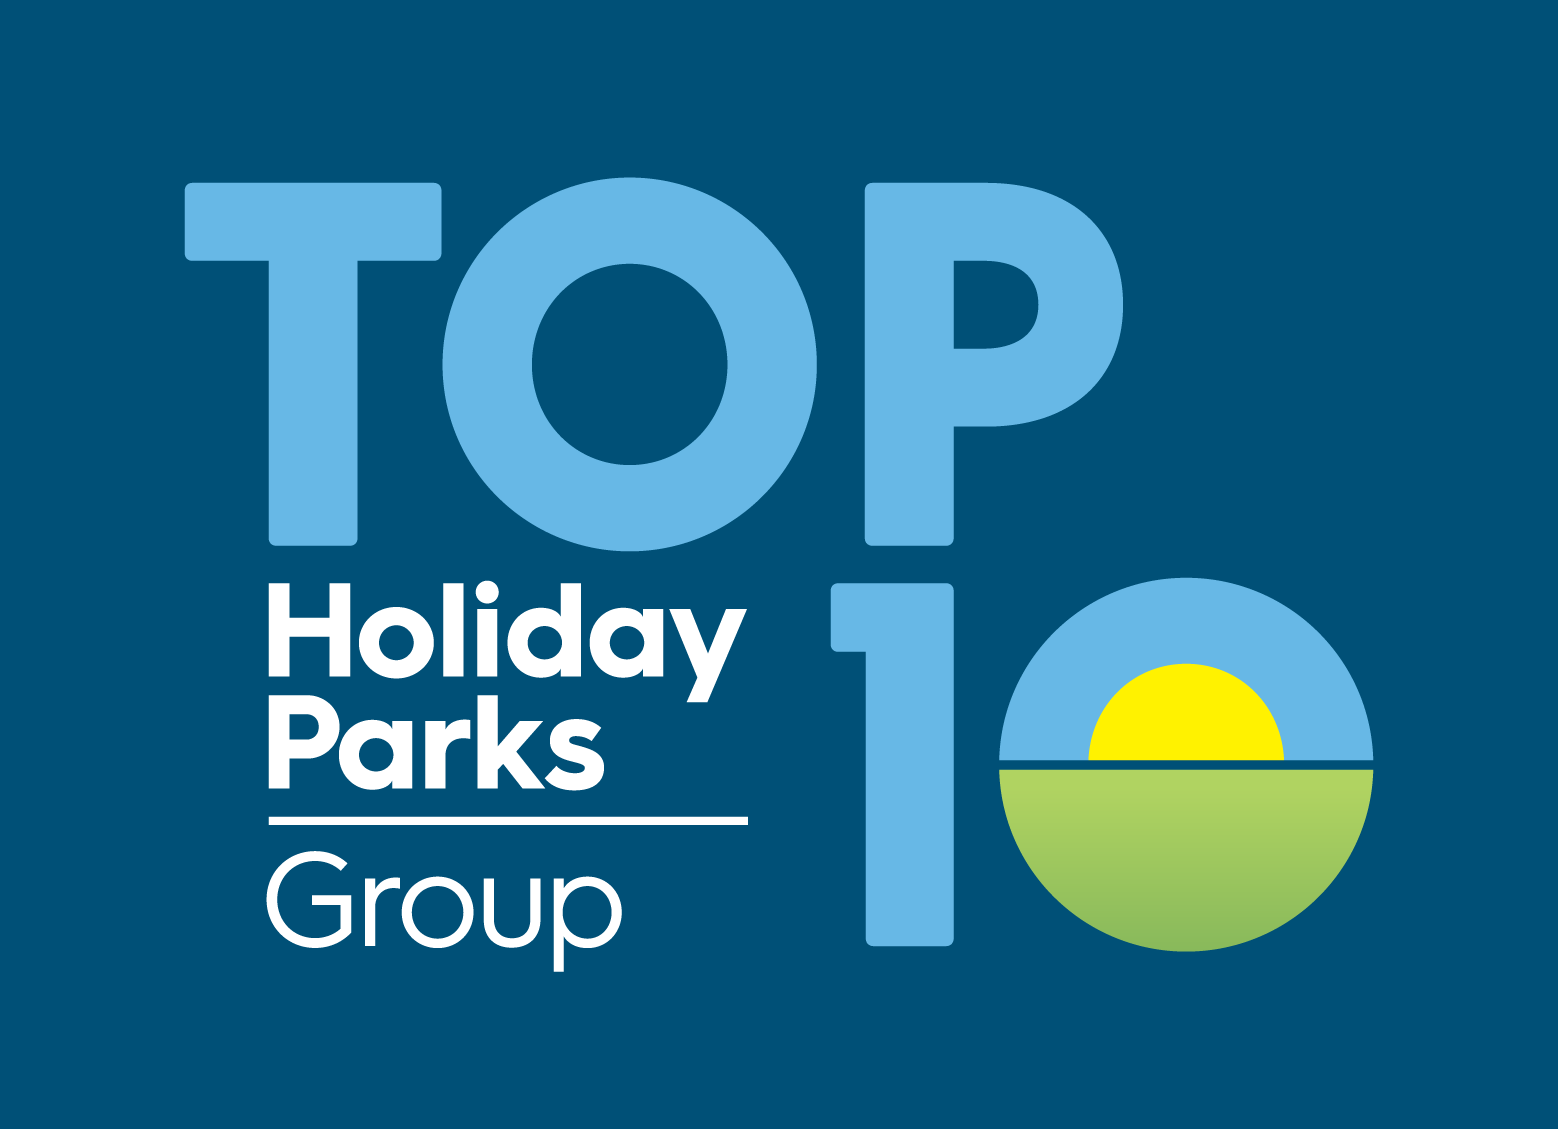 Top 10 Holiday Parks logo